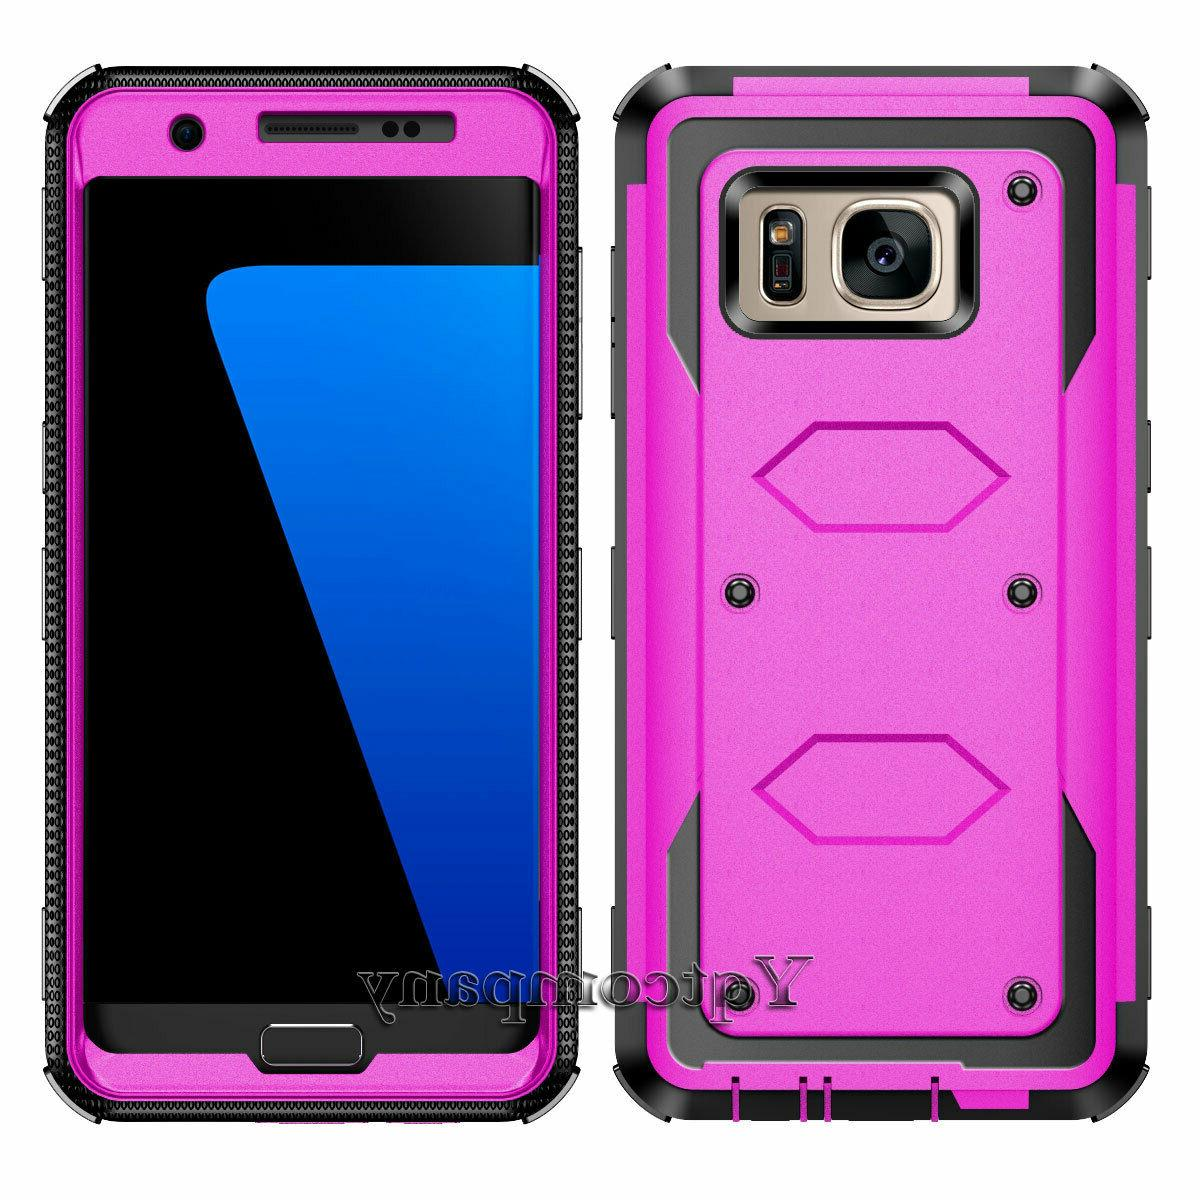 For Edge/S8/S9/S20/Note 10 Phone